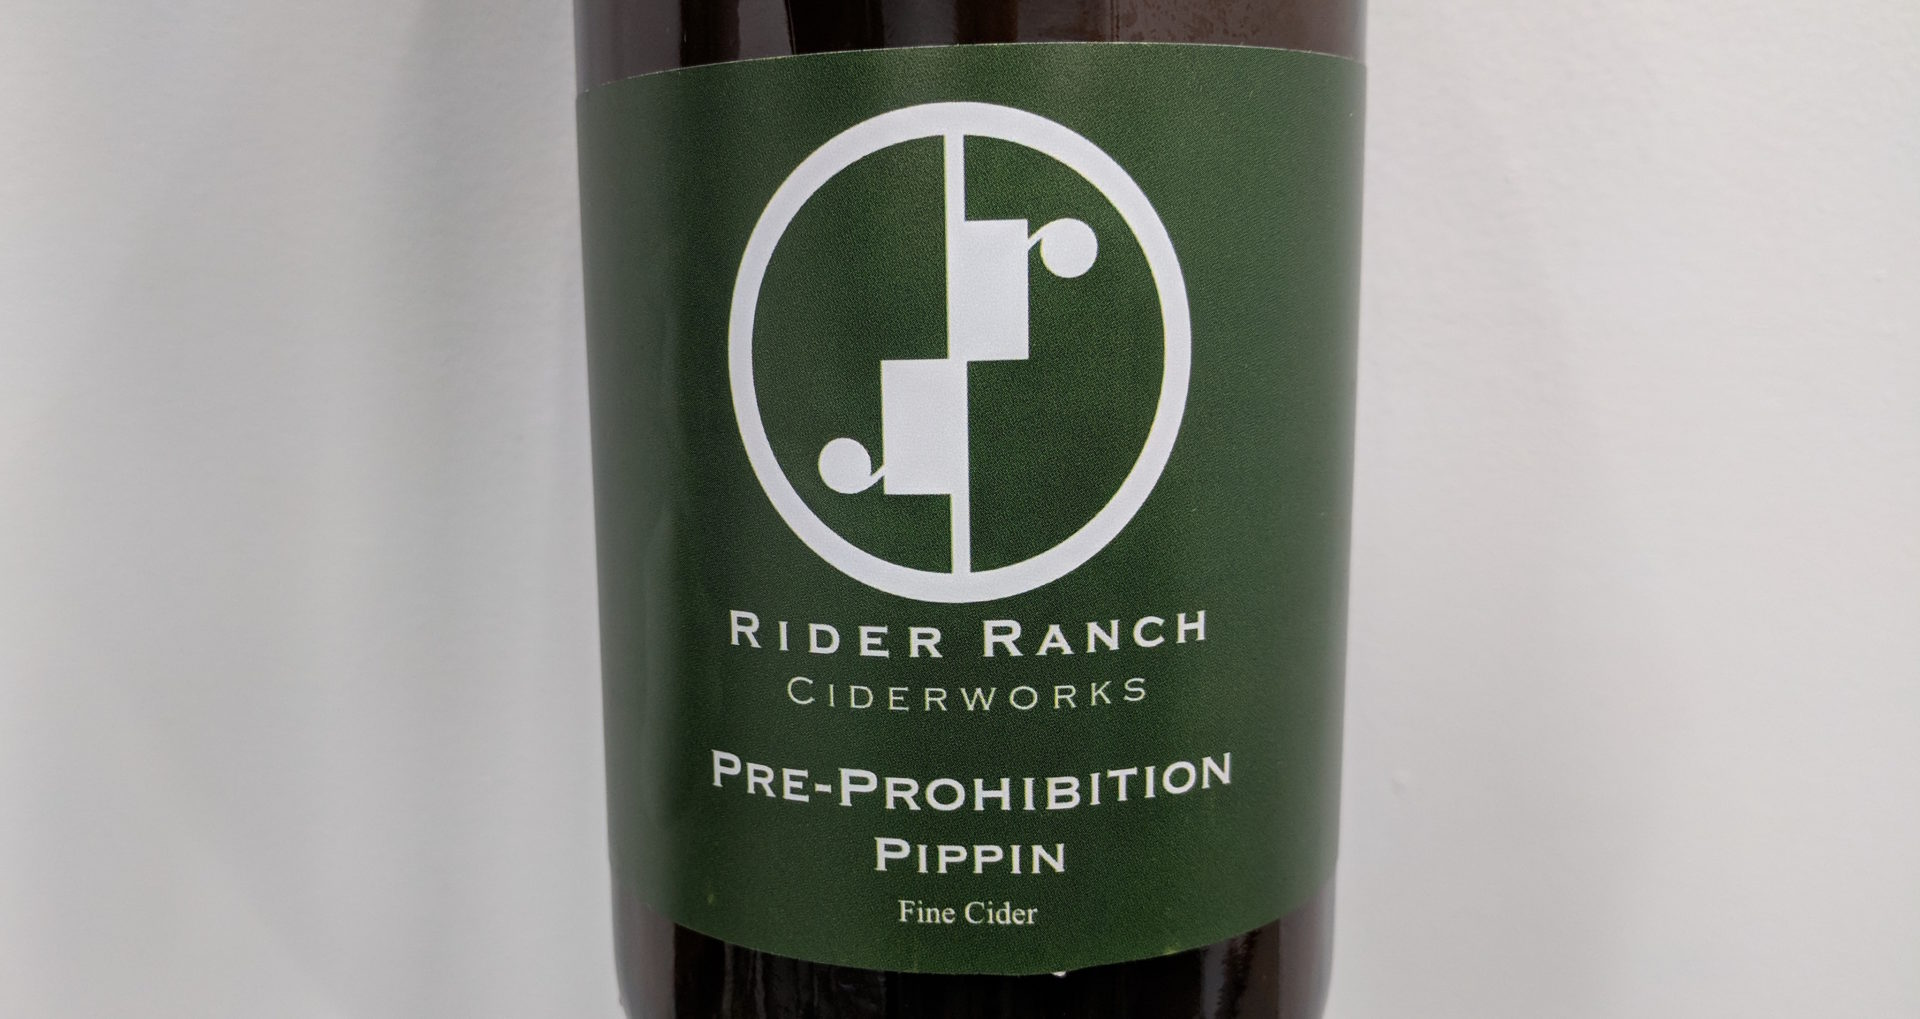 Rider Ranch Ciderworks Pre-Prohibition Pippin